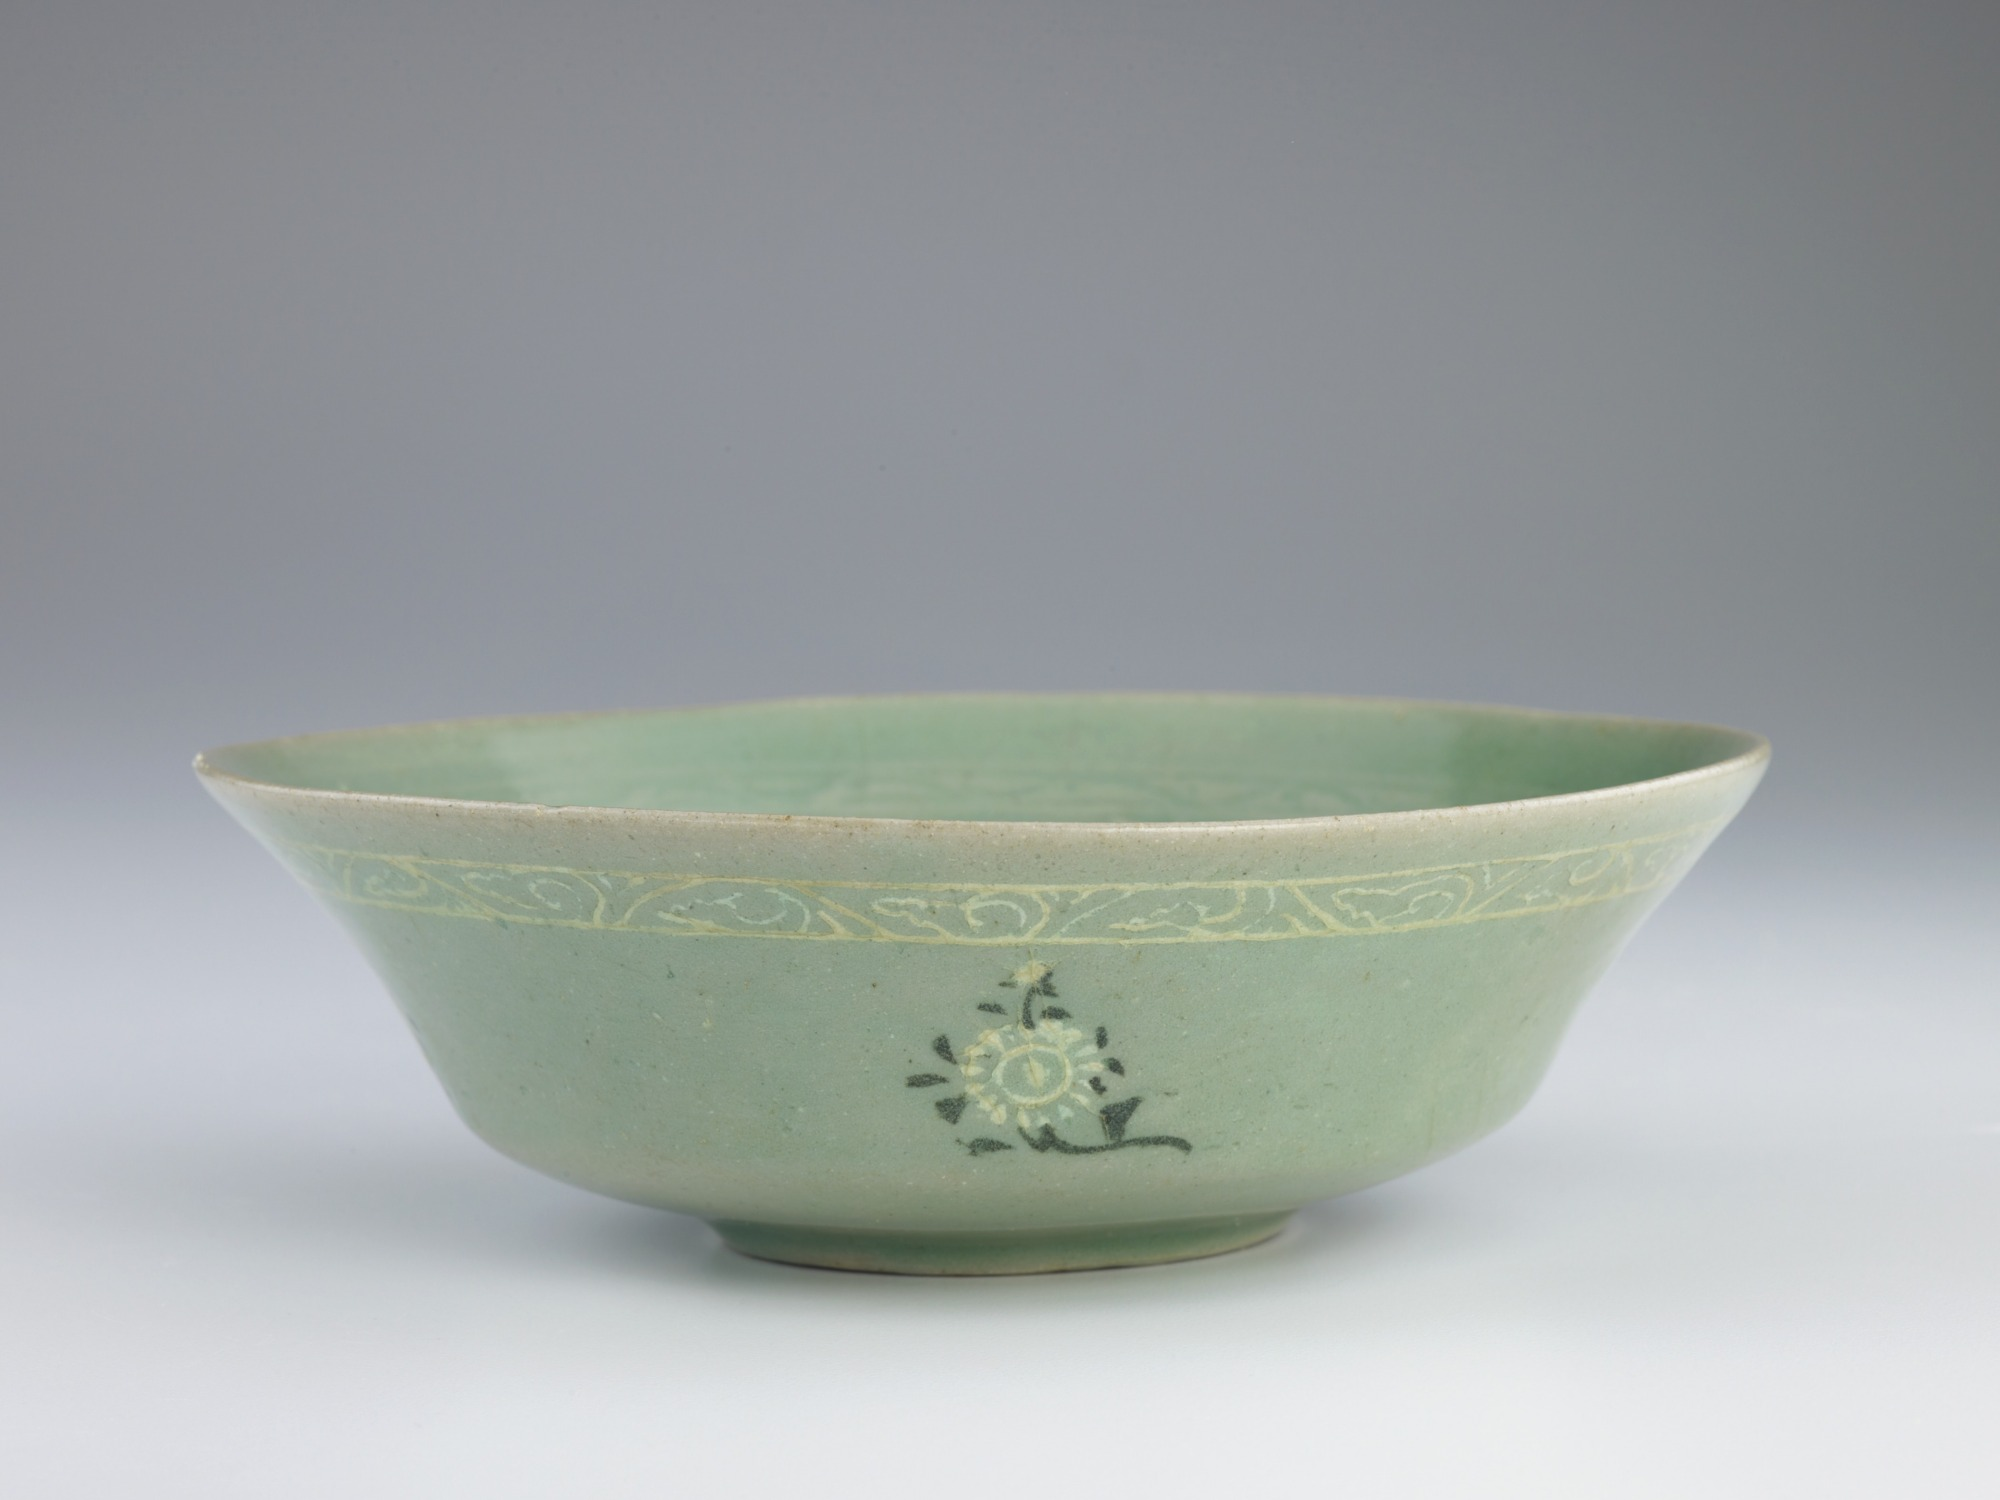 Dish with mold-impressed and inlaid decoration, profile